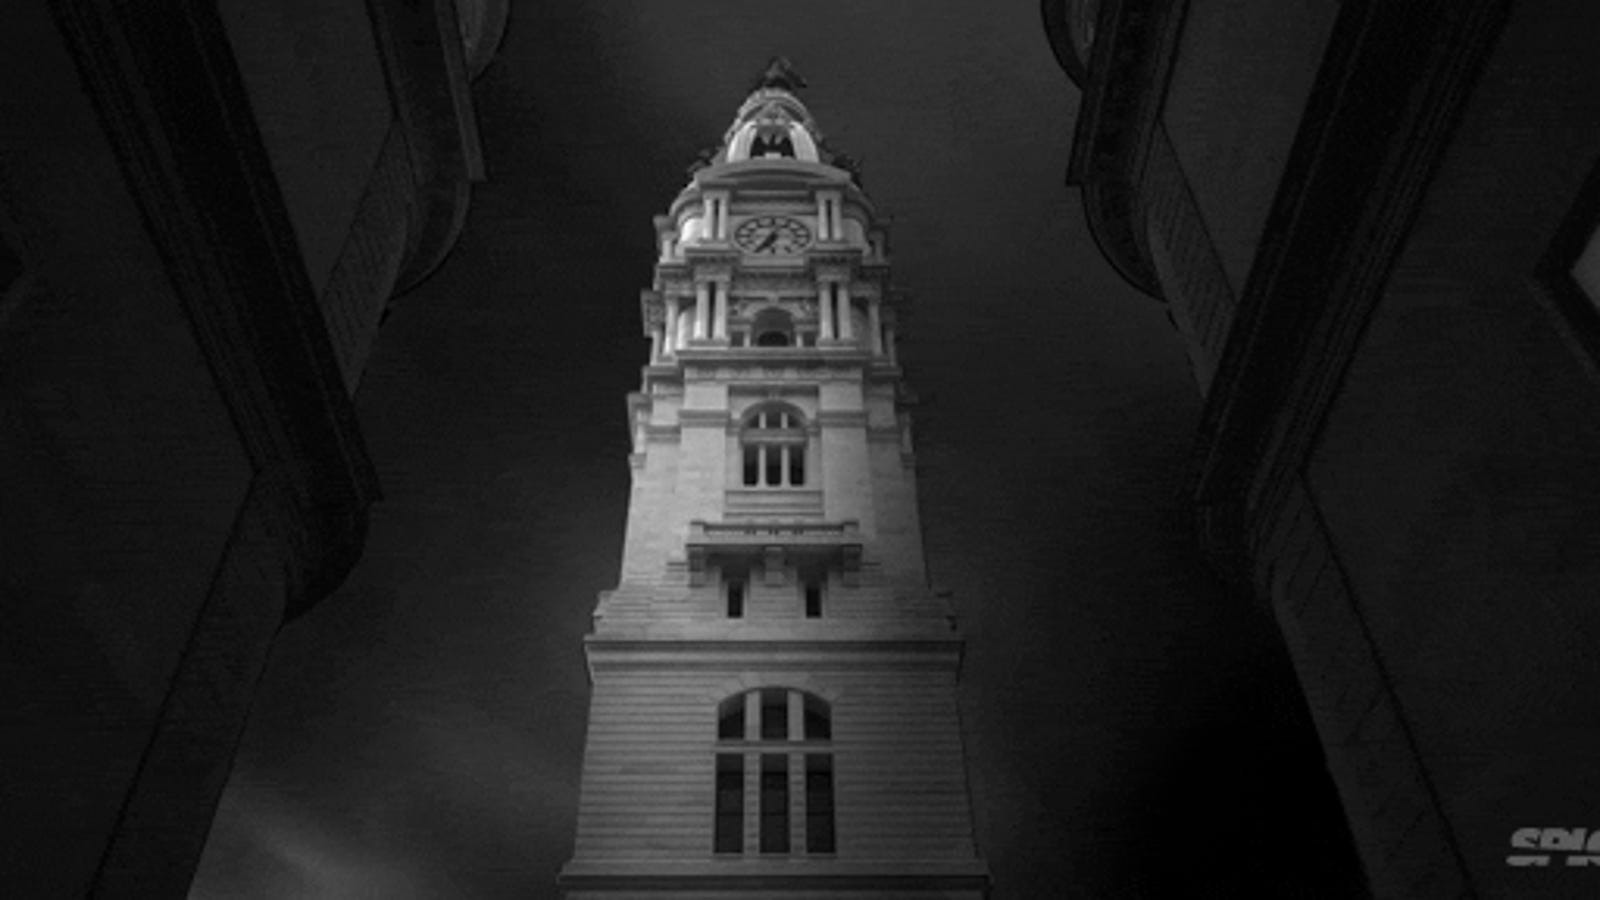 Time lapse: An empty city in black and white feels so eerie and lonely